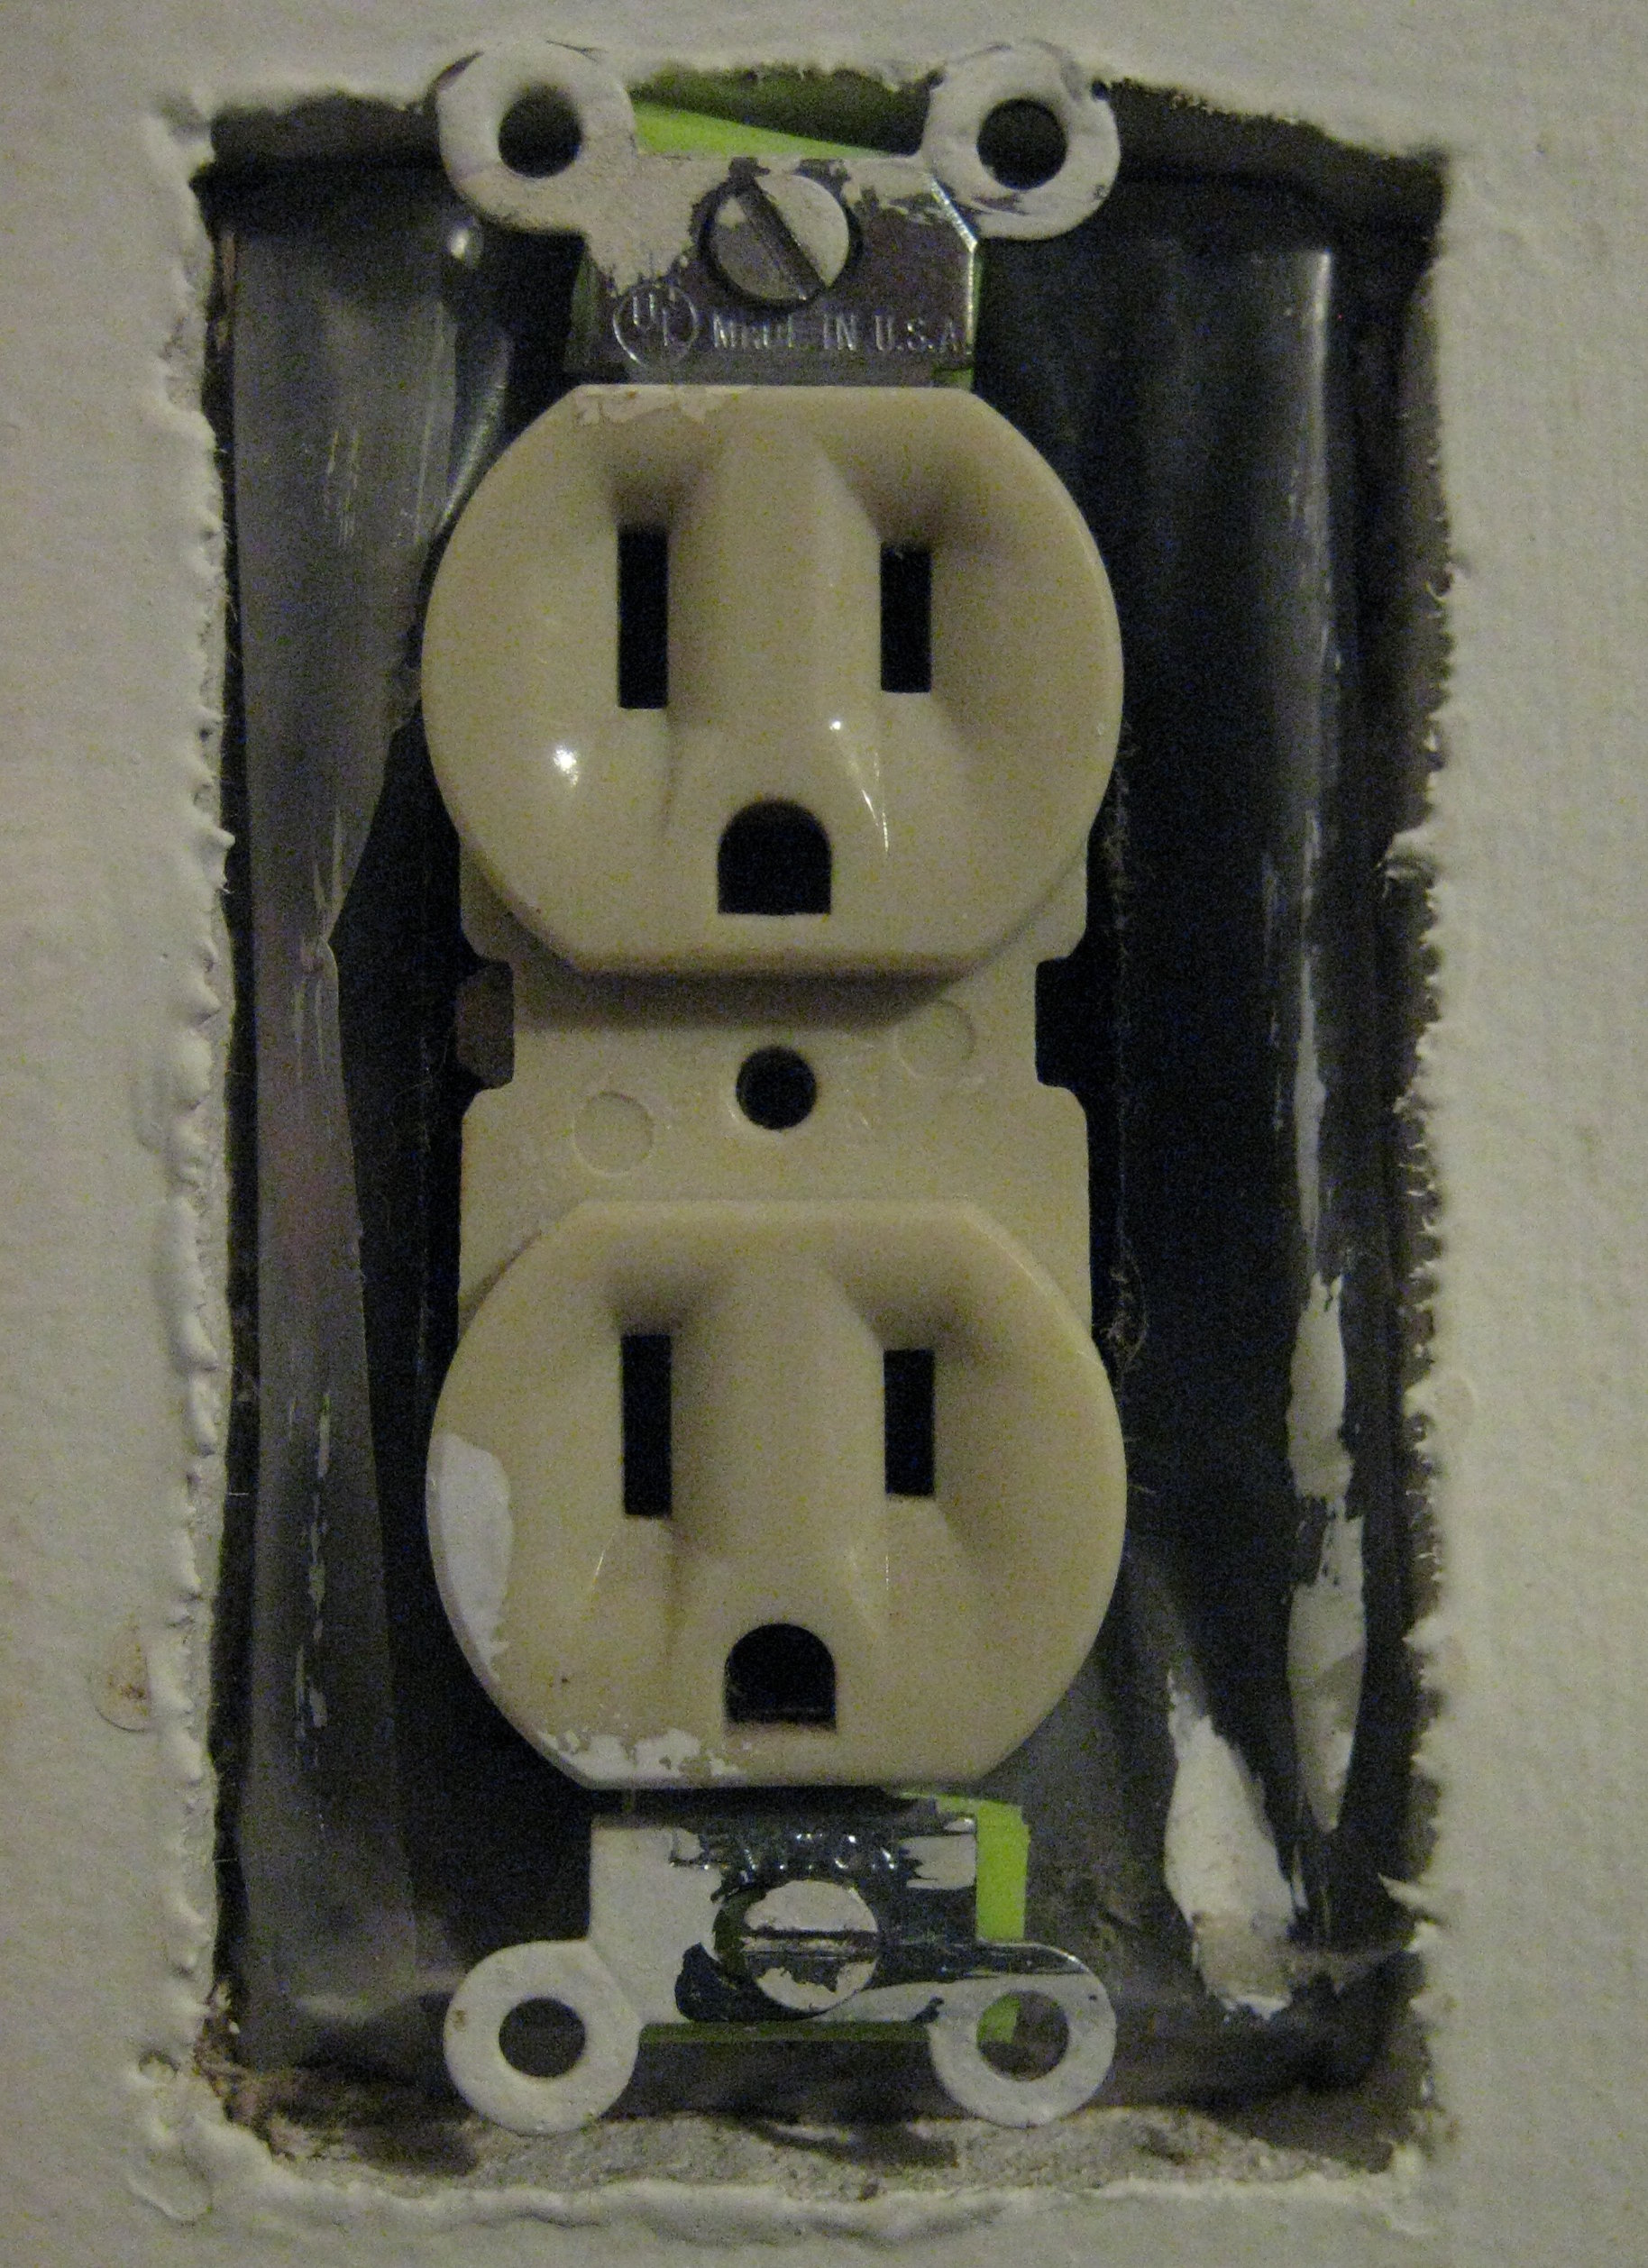 if you have experience with these ers or if you have your own method of securing loose outlets and switches let us know in